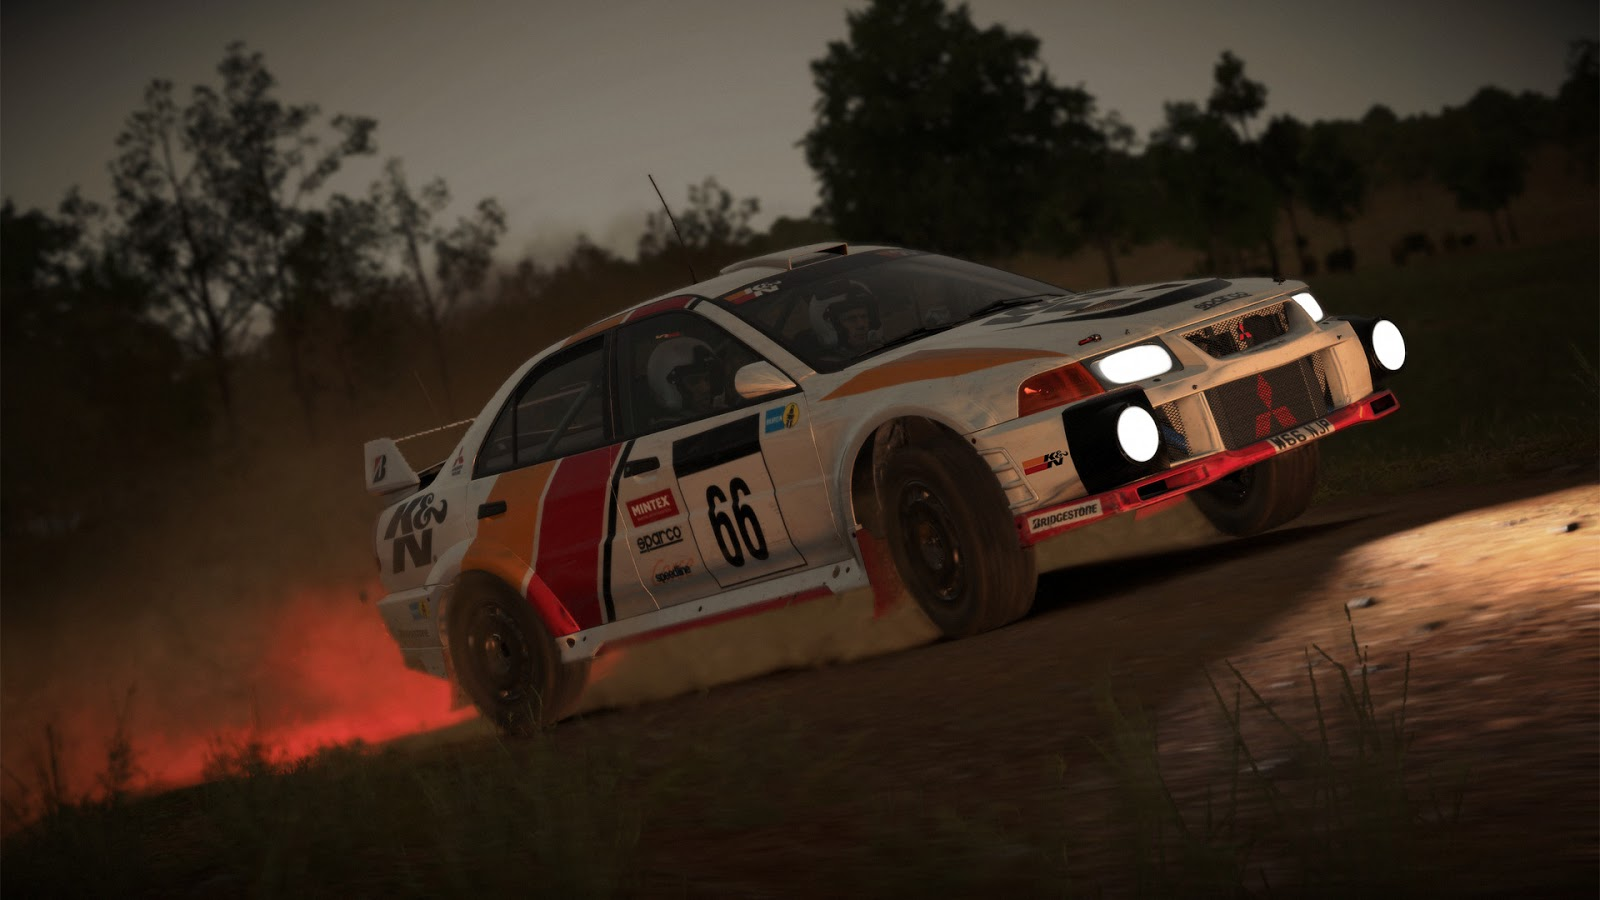 DiRT 4 ESPAÑOL PC (RELOADED) + Update v1.06 (BAT) + REPACK 5 DVD5 (JPW) 4